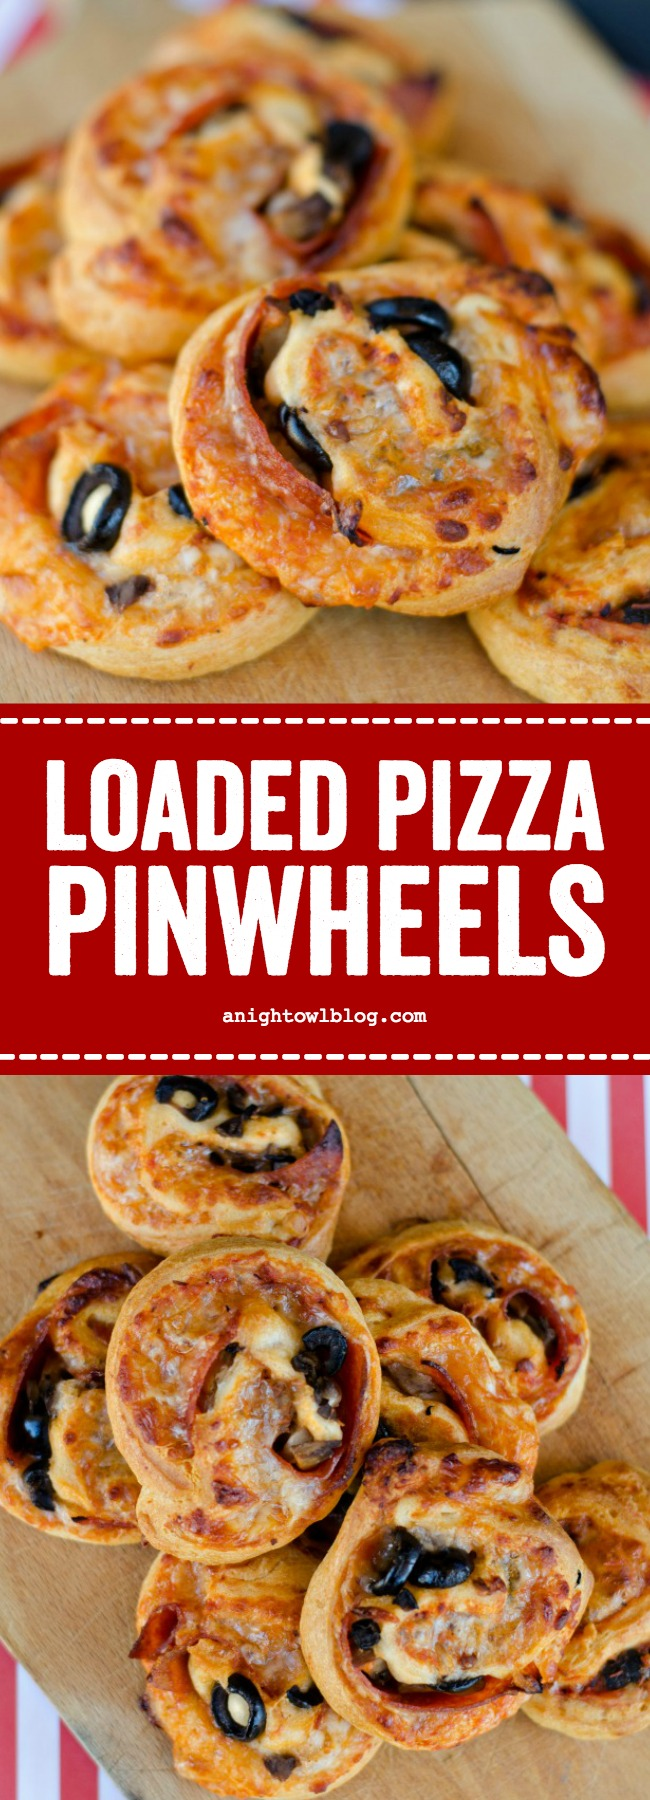 Loaded Pizza Pinwheels made with crescent rolls and stuffed with pizza toppings are a delicious and easy after school snack for your kiddos! #pinwheels #snacks